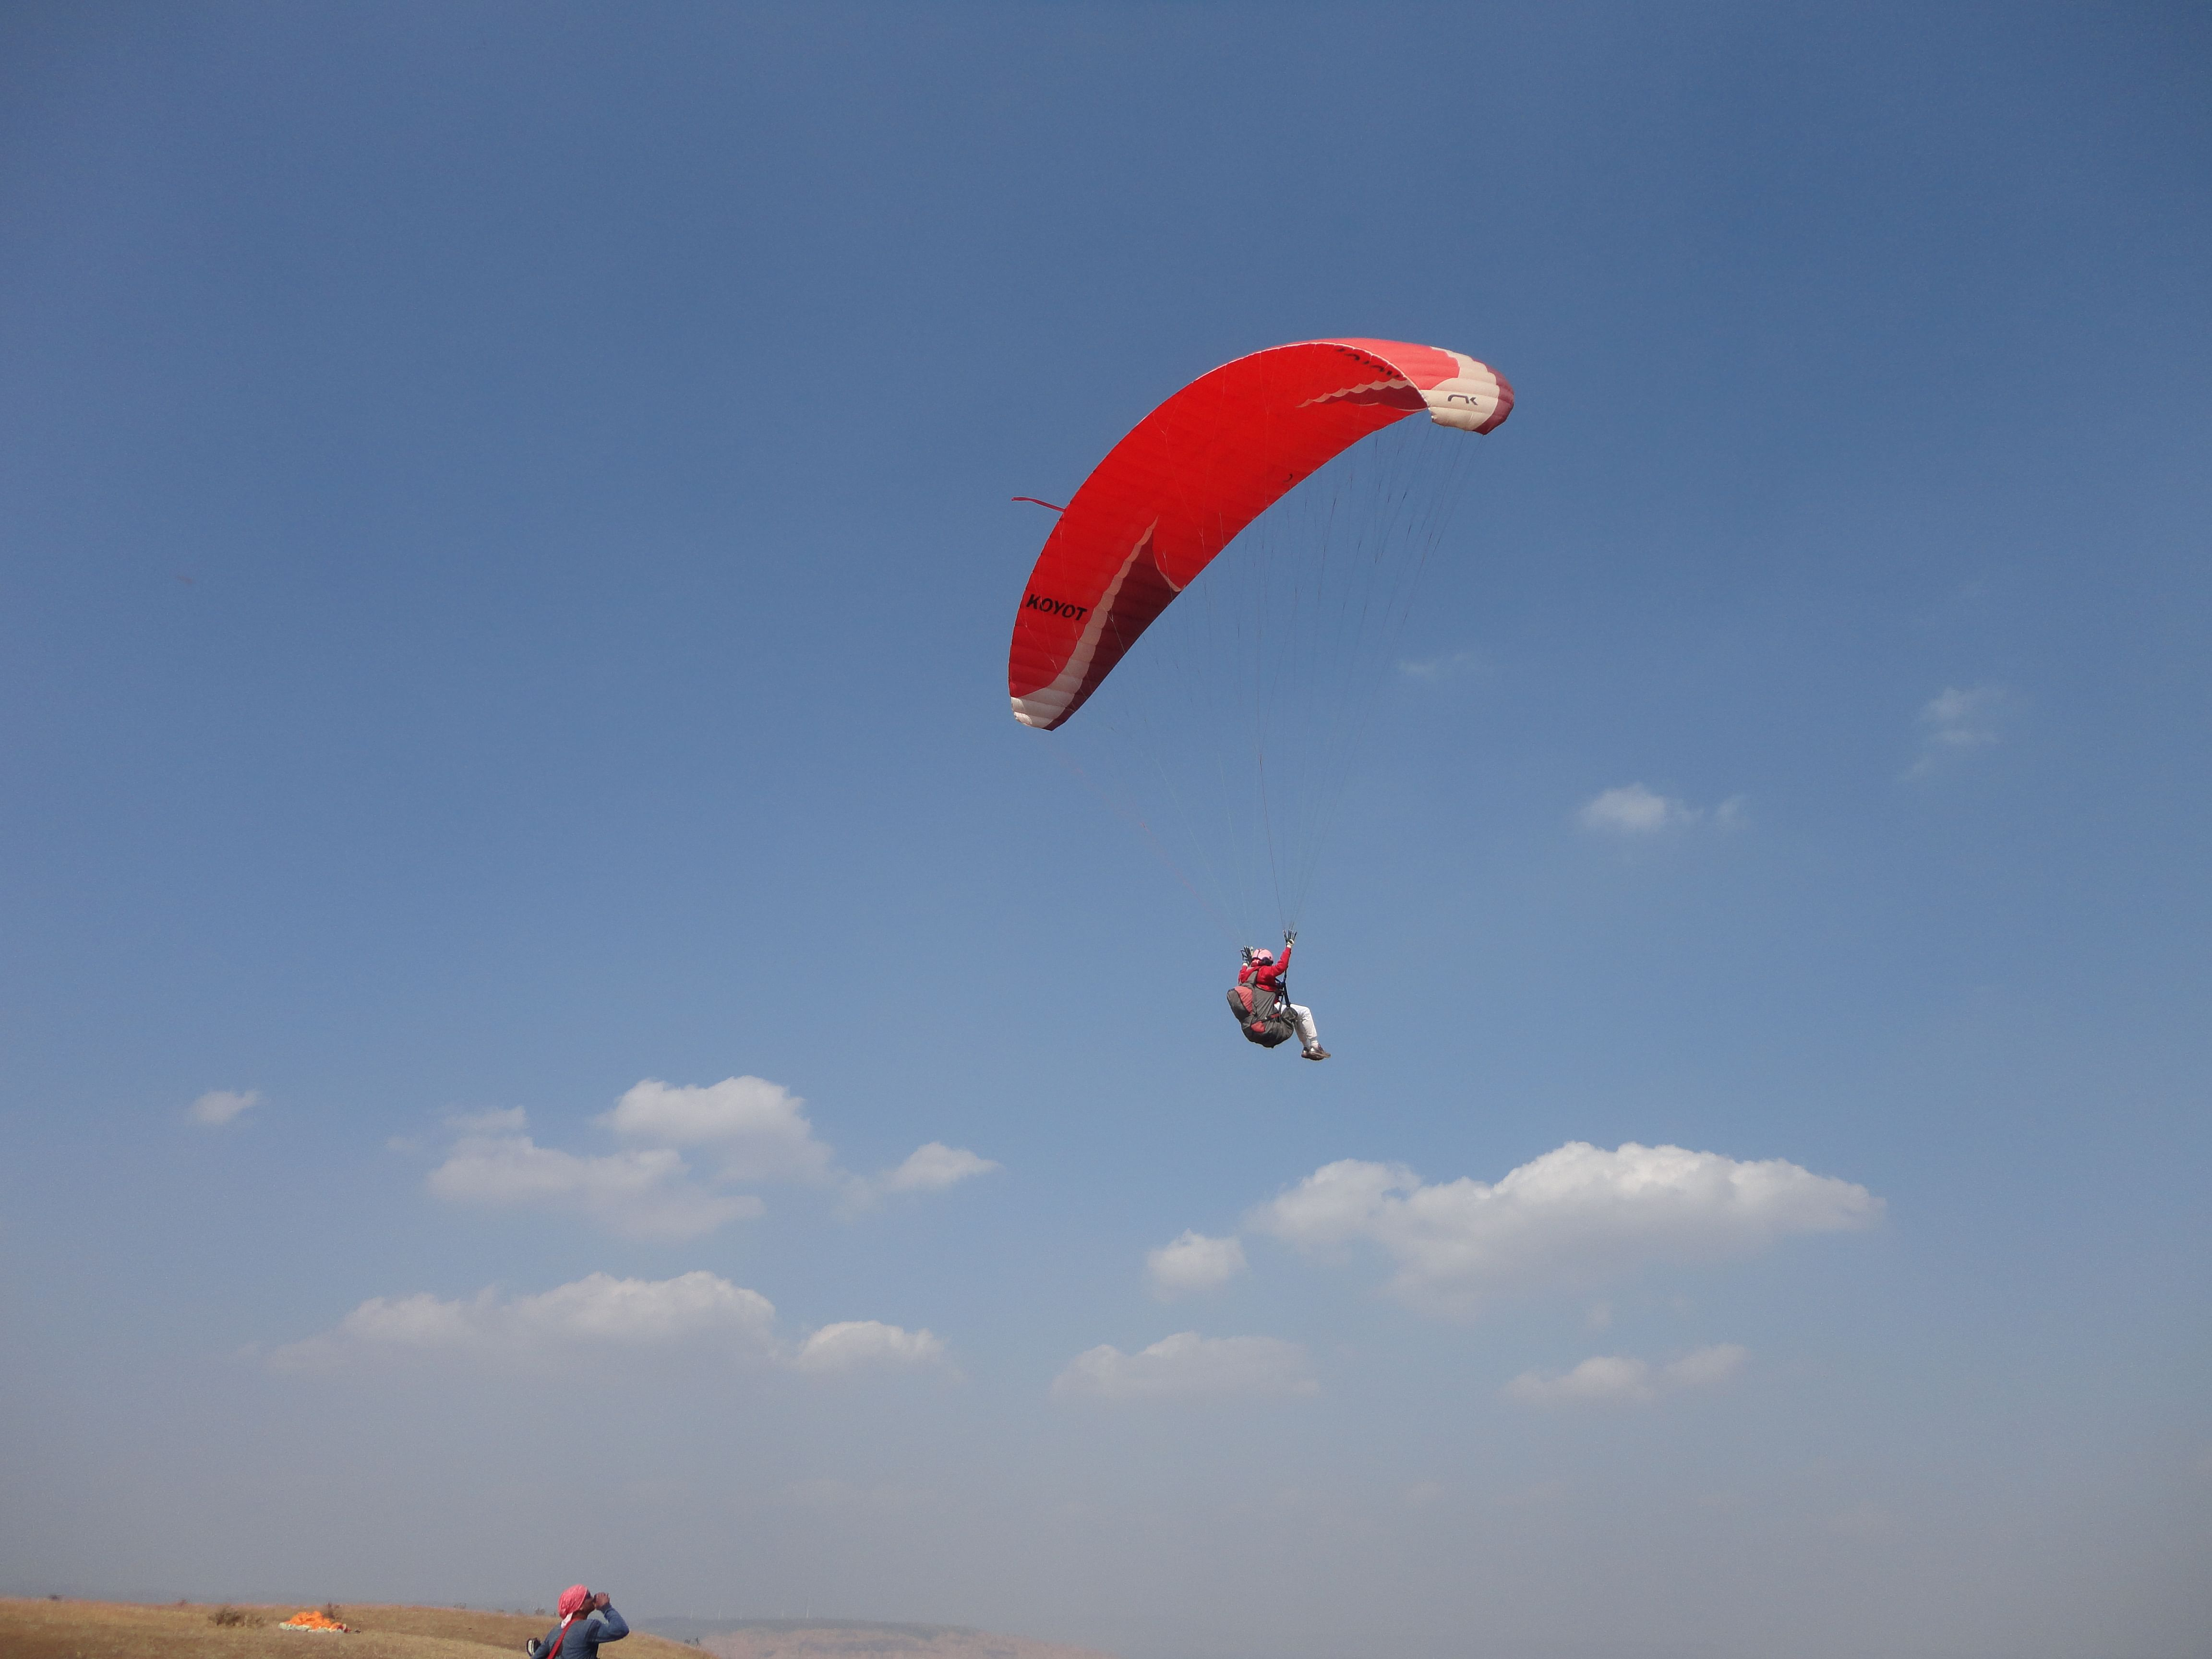 Yasmin's one of the most memorable moment was when she was paragliding.